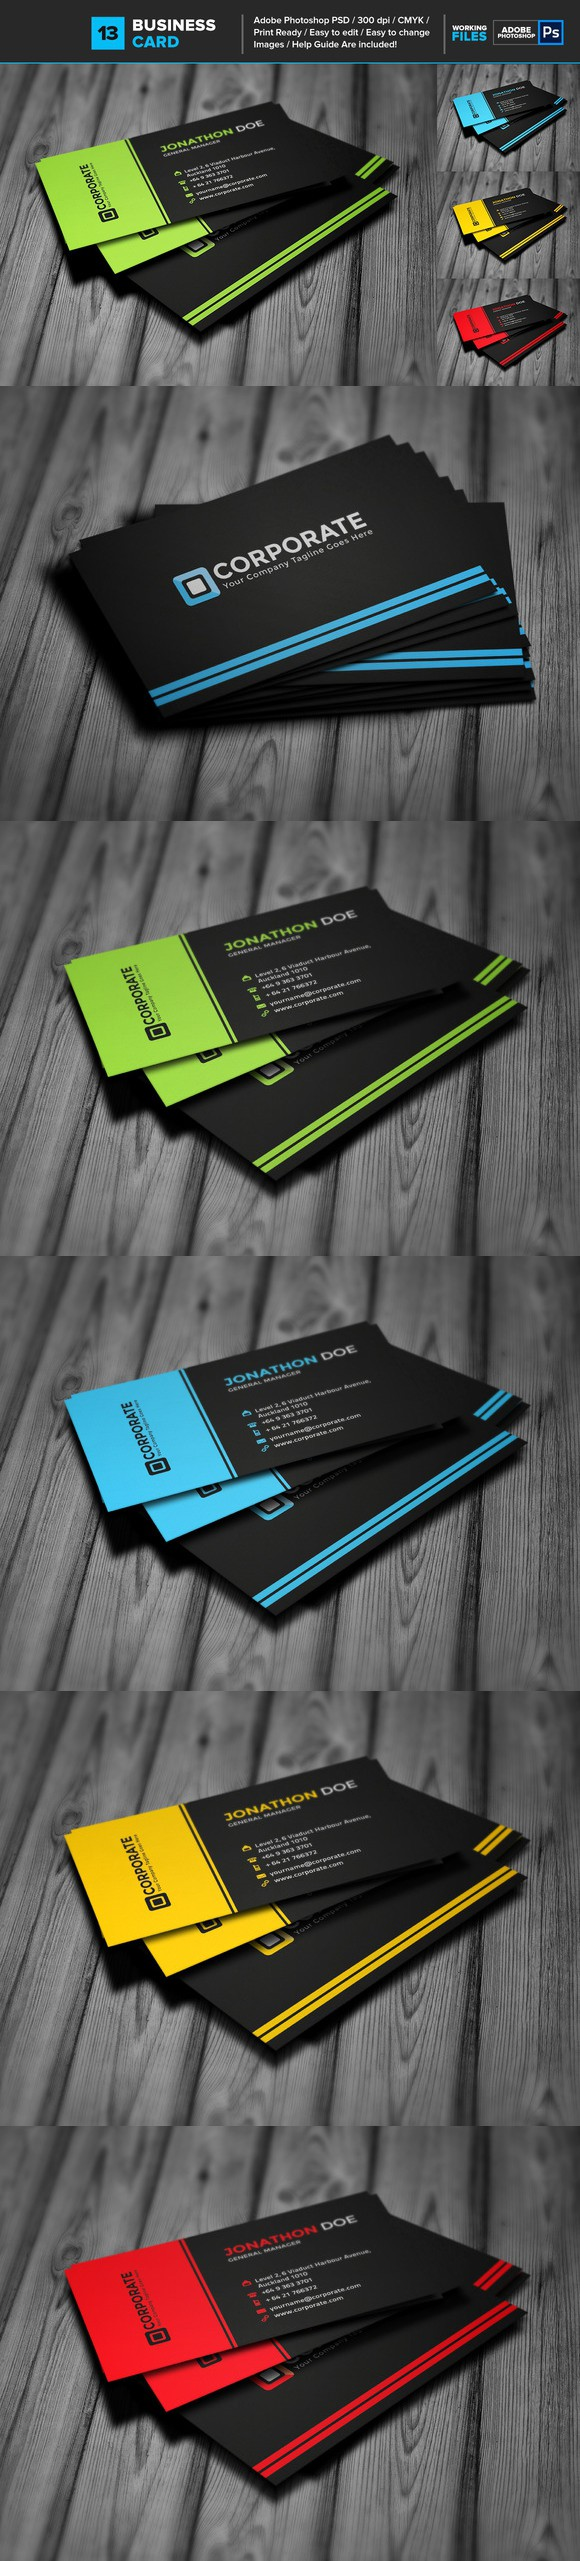 Professional business card 13 business cards card templates and professional business card 13 colourmoves